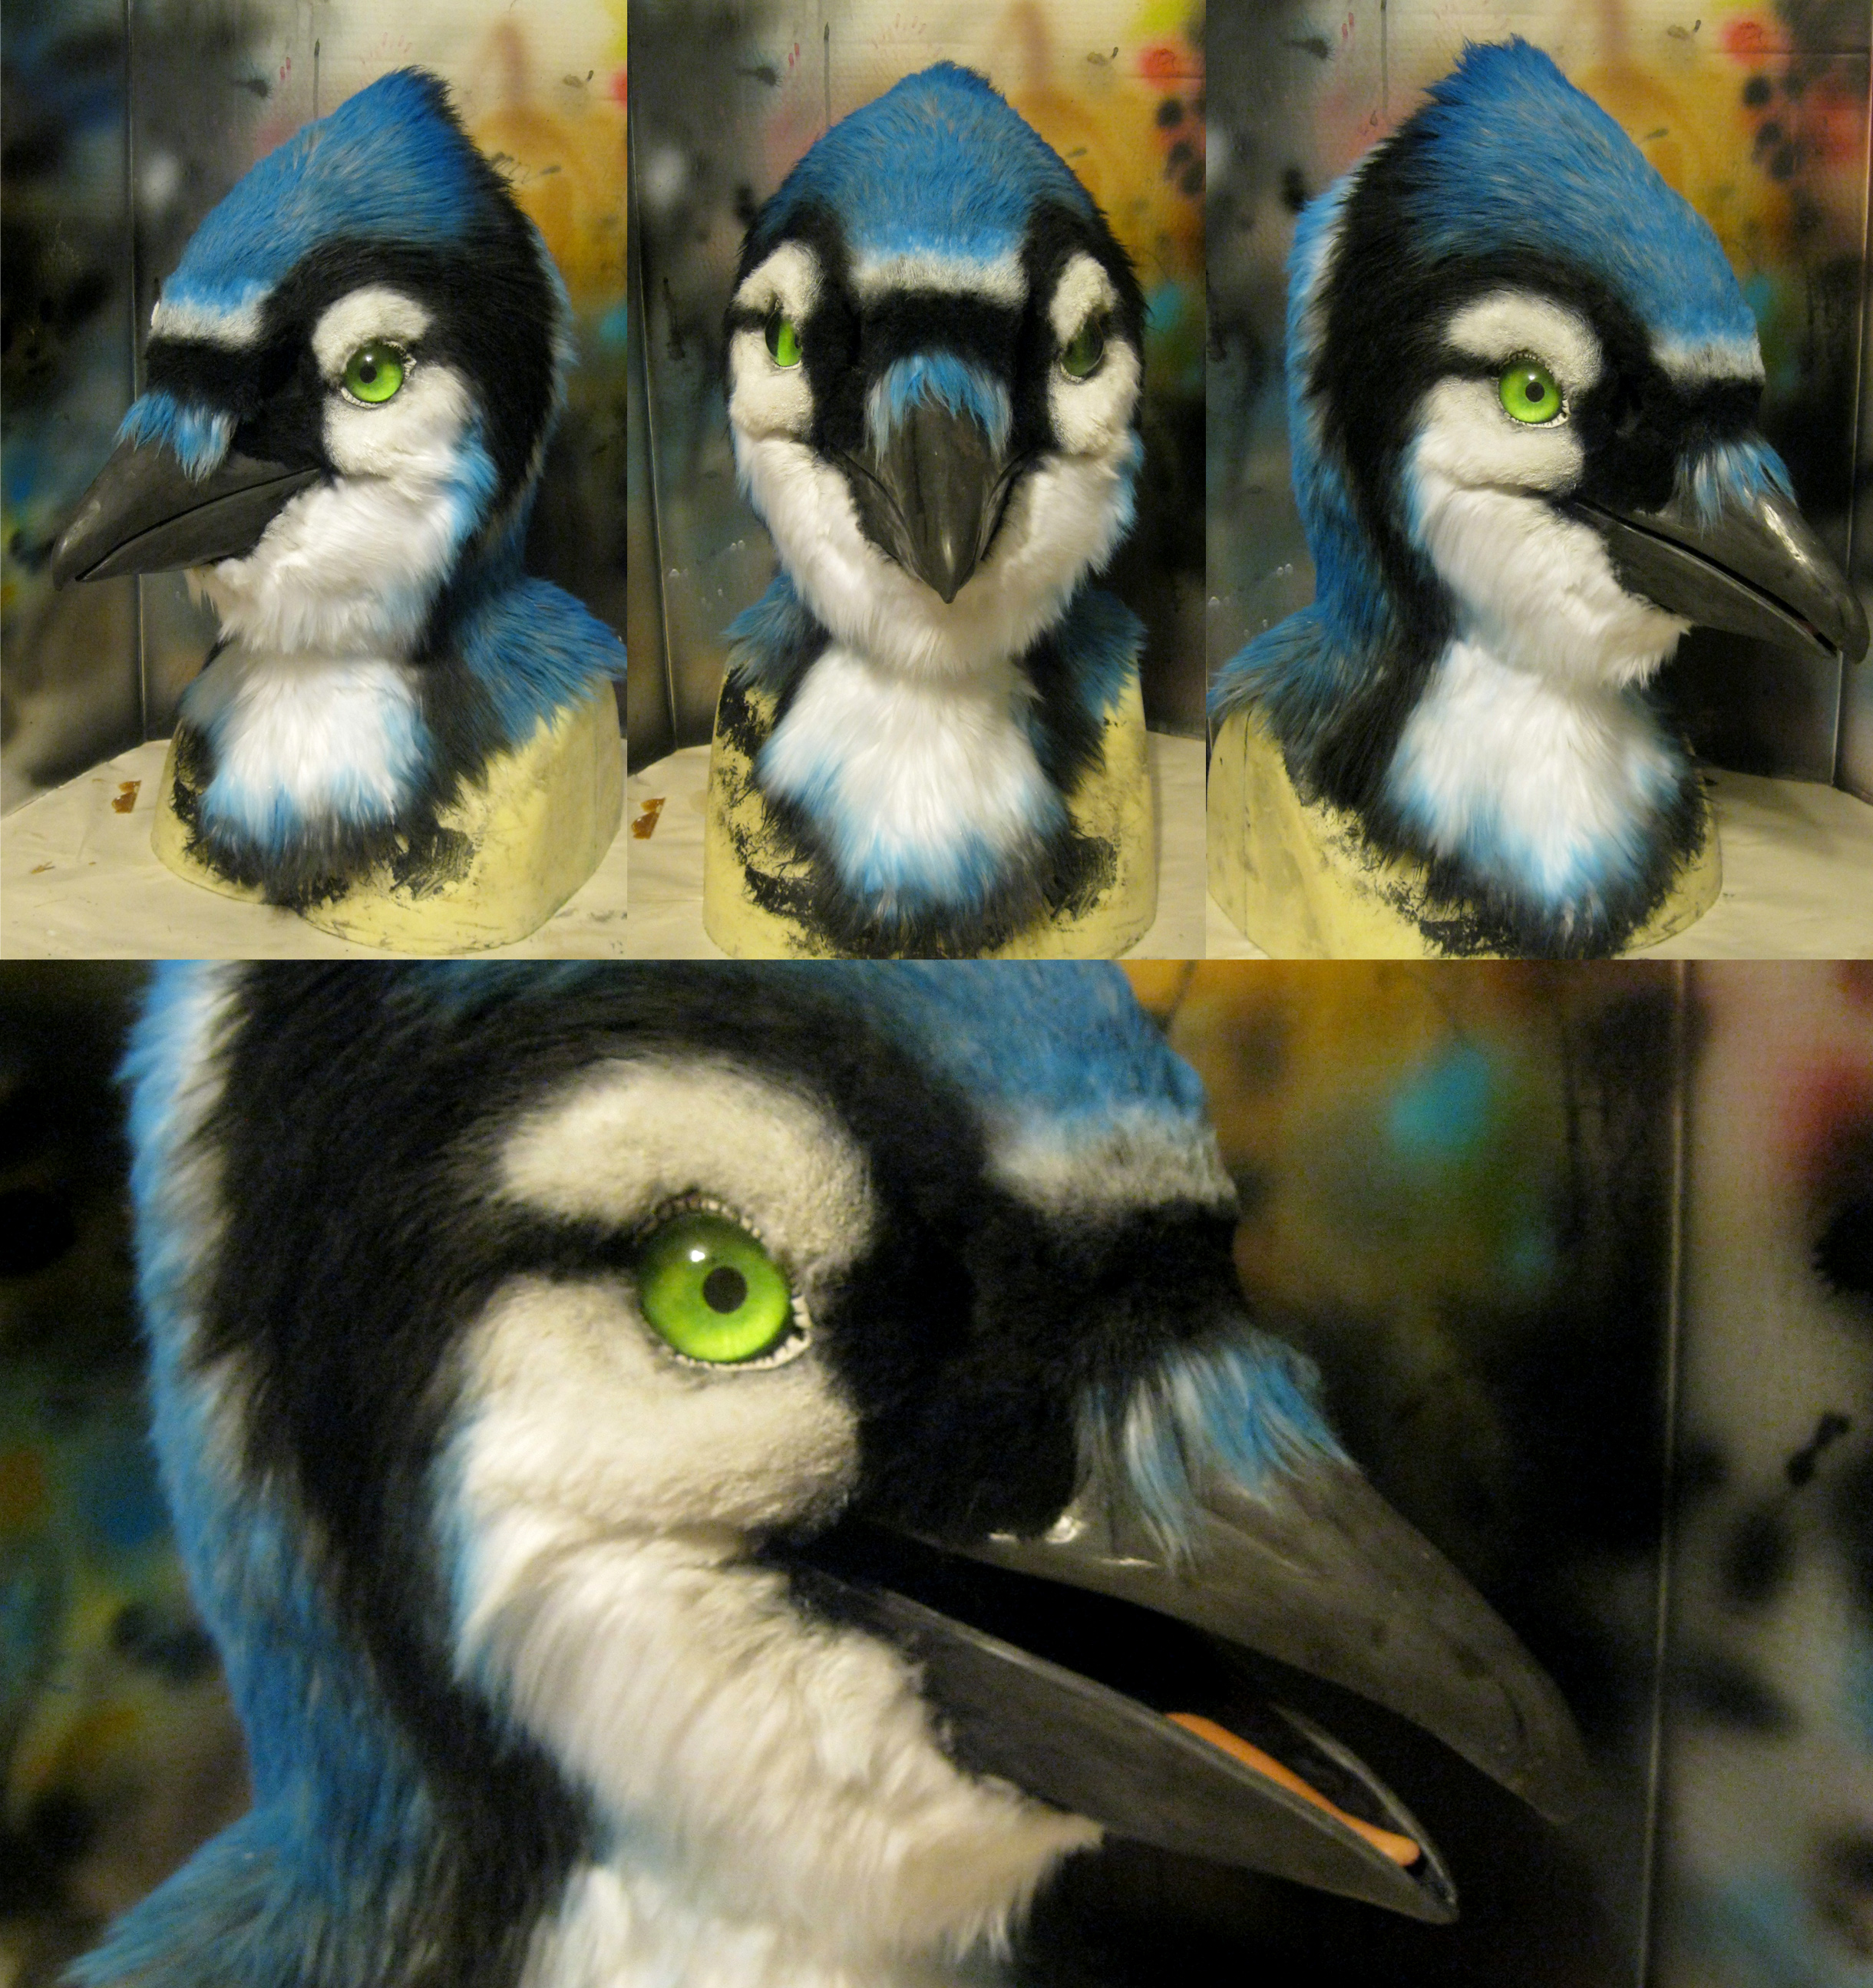 Bluejay With Different Eyes!